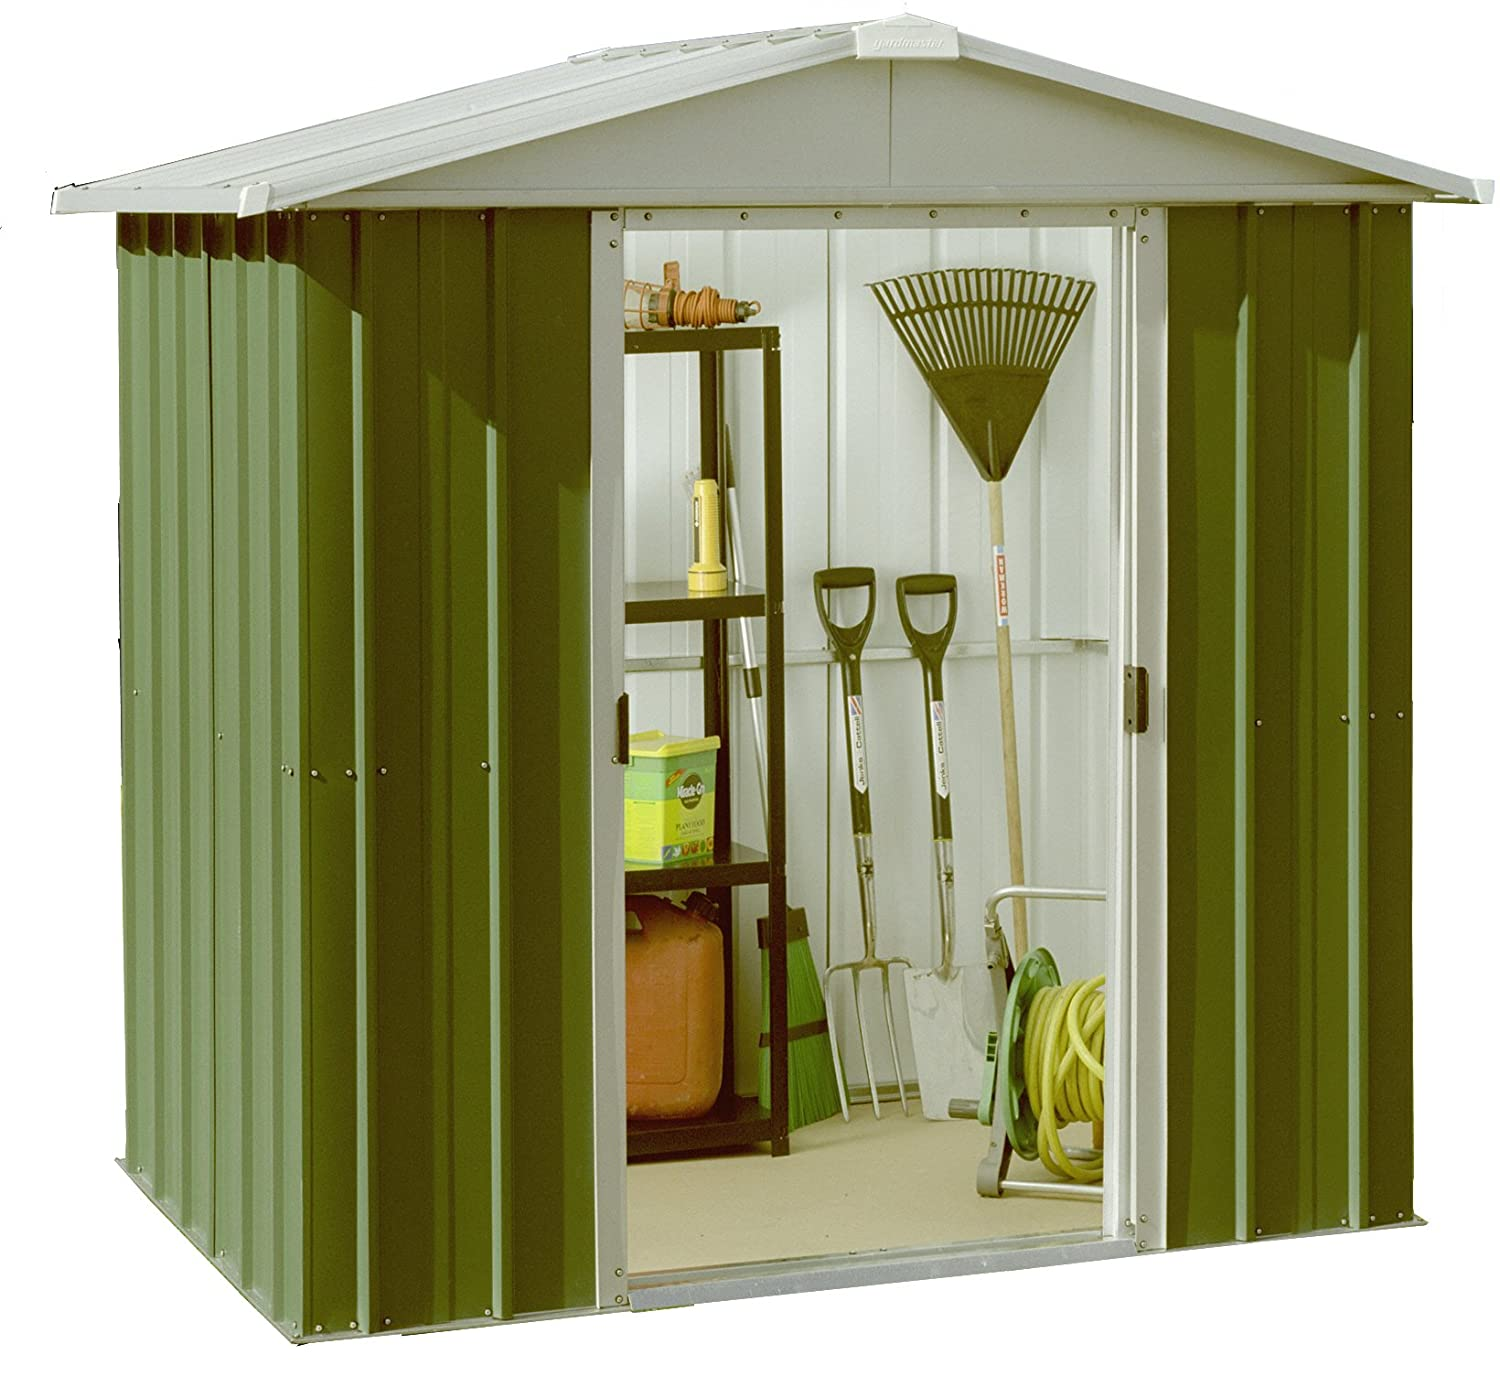 yardmaster international 66geyz 6 x 6ft deluxe metal shed green silver amazoncouk garden outdoors